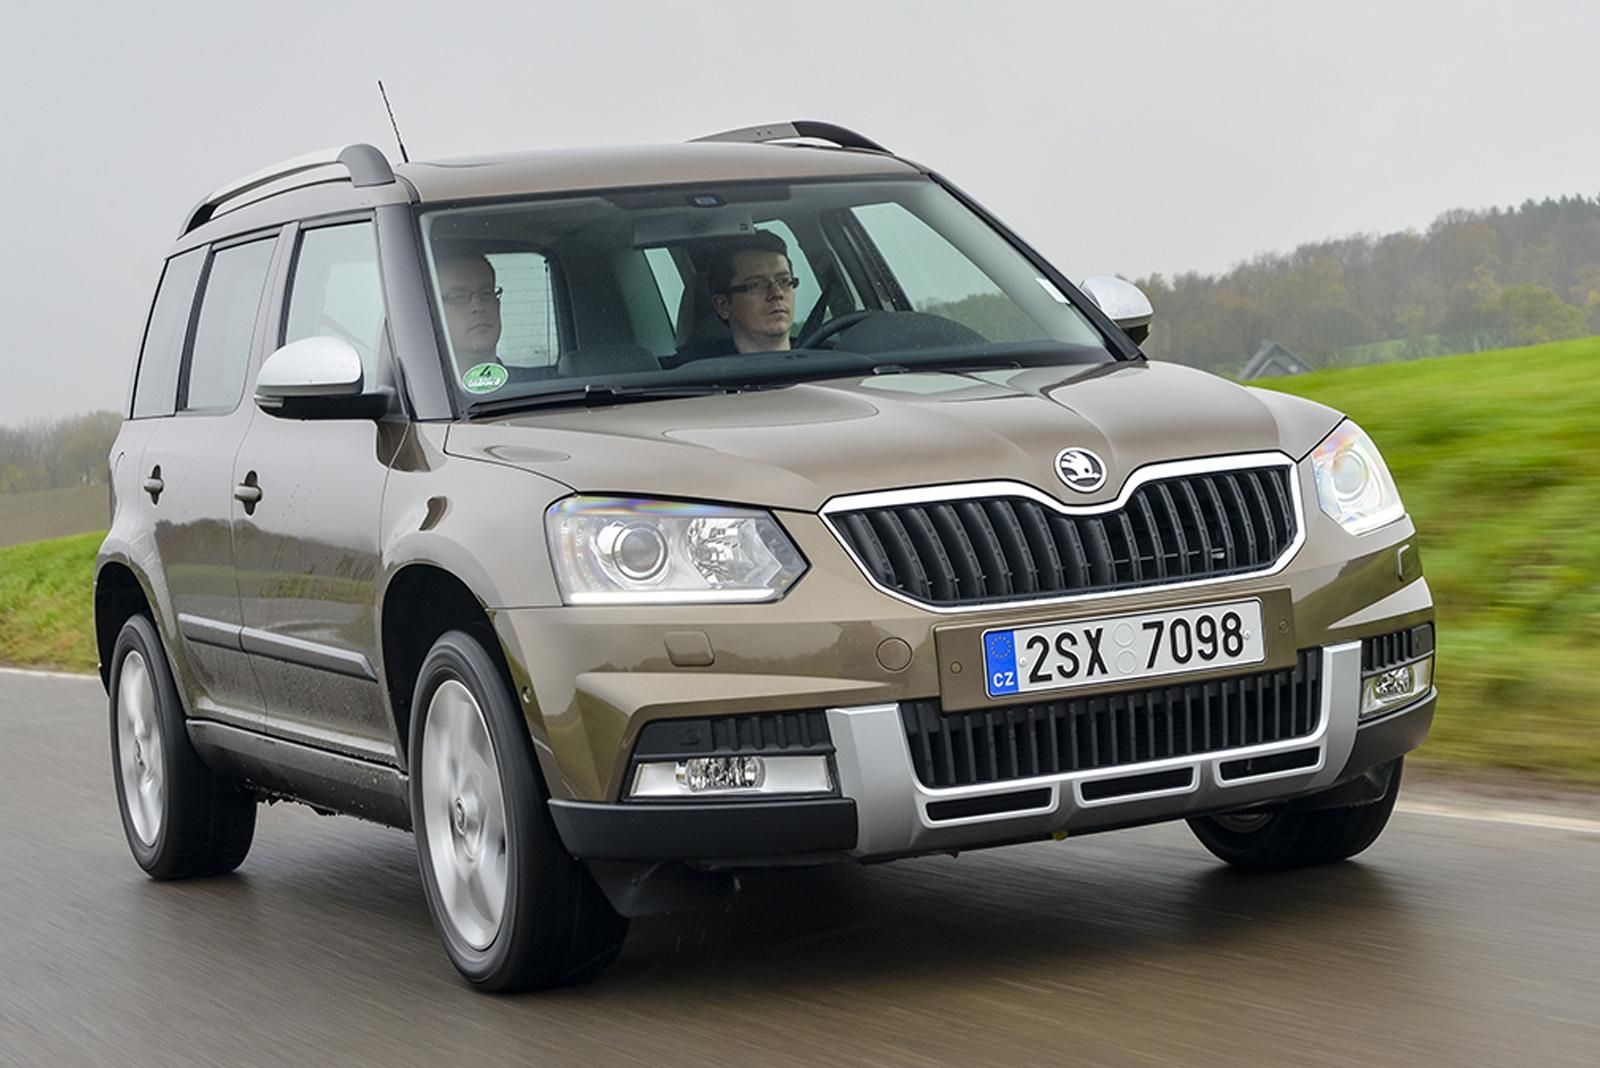 2018 Skoda Yeti To Become More Conventional Suv Autocar For 2019